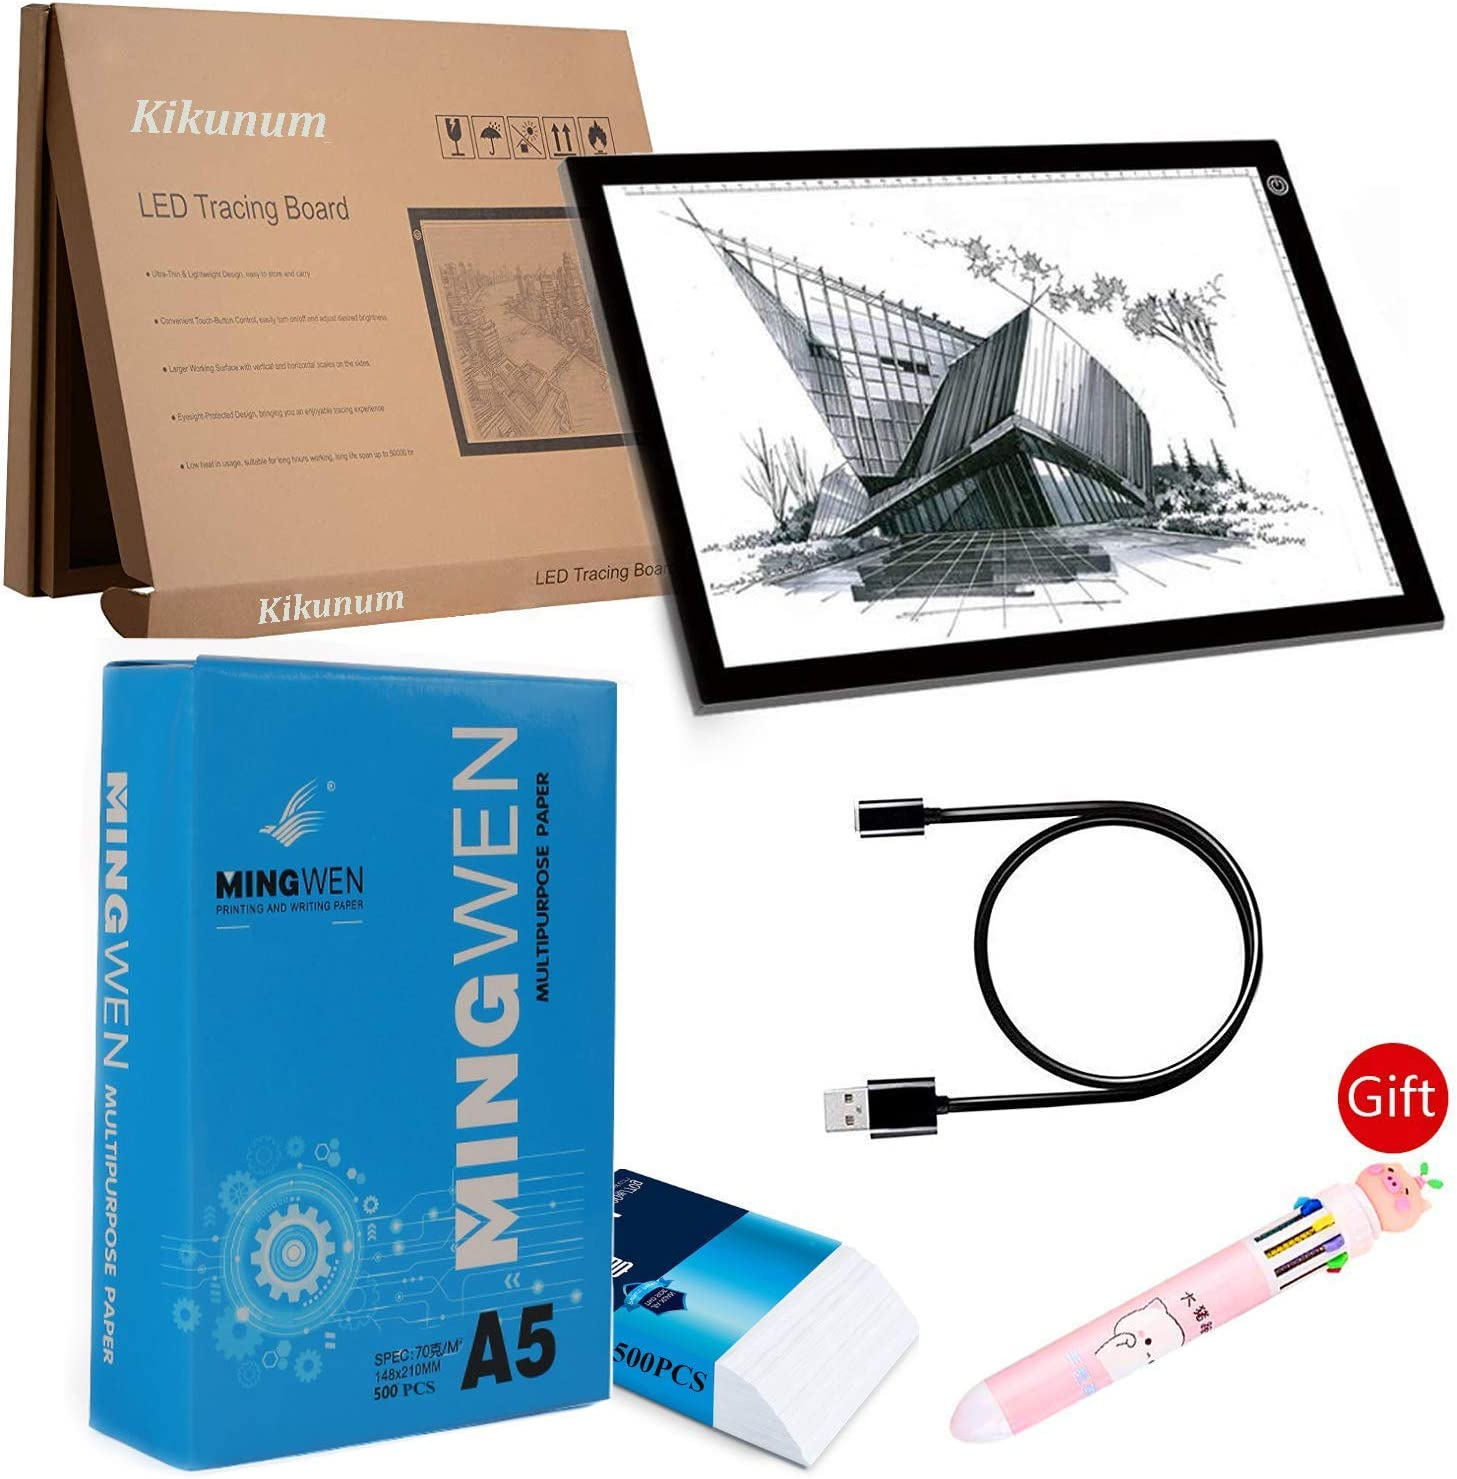 Led Light Box//Light Tablet for Tracing Flip Book Paper with Screws Flipbook Light Pad Flip Book Kit LED Lightbox for Drawing and Tracing /& 240 Sheets Animation Paper for Flip Books A5 Flipbook Kit